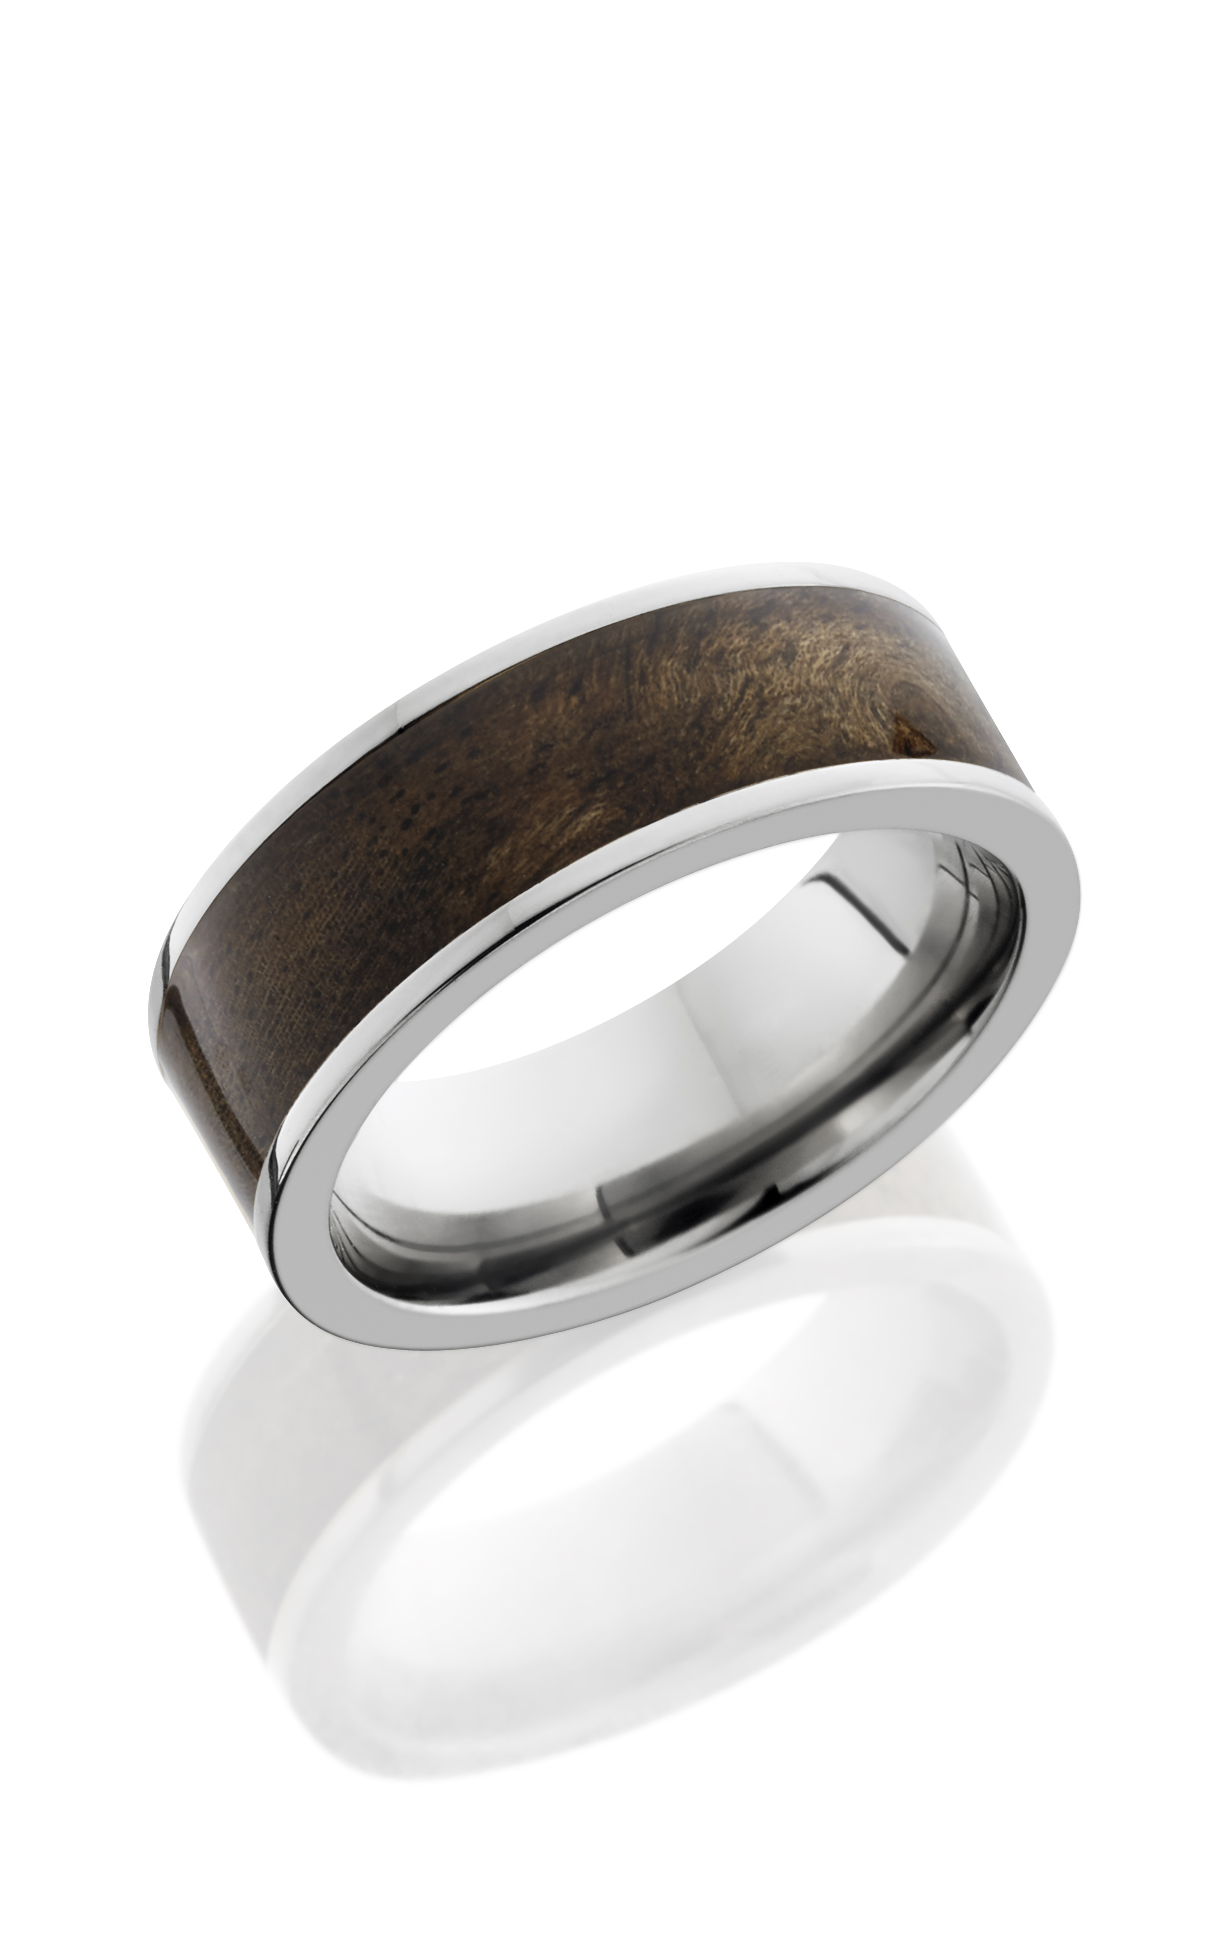 Lashbrook Hardwood Collection Wedding band 90113 product image